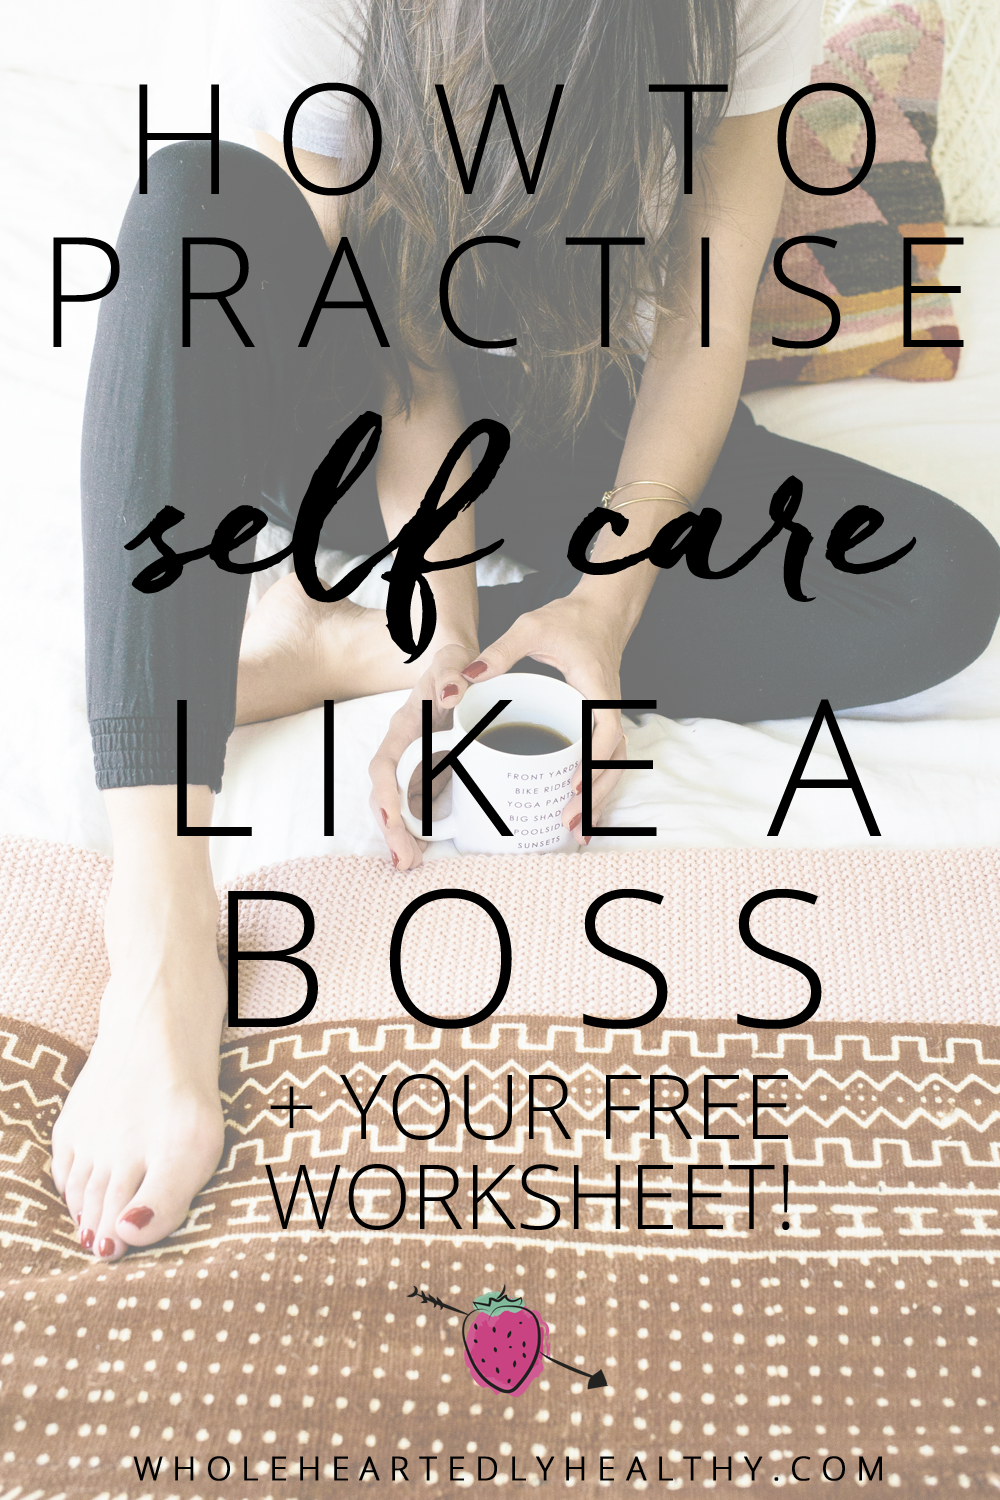 Workbooks self care worksheets : How to Practise Self Care like a Boss (free worksheet + 50 ways to ...